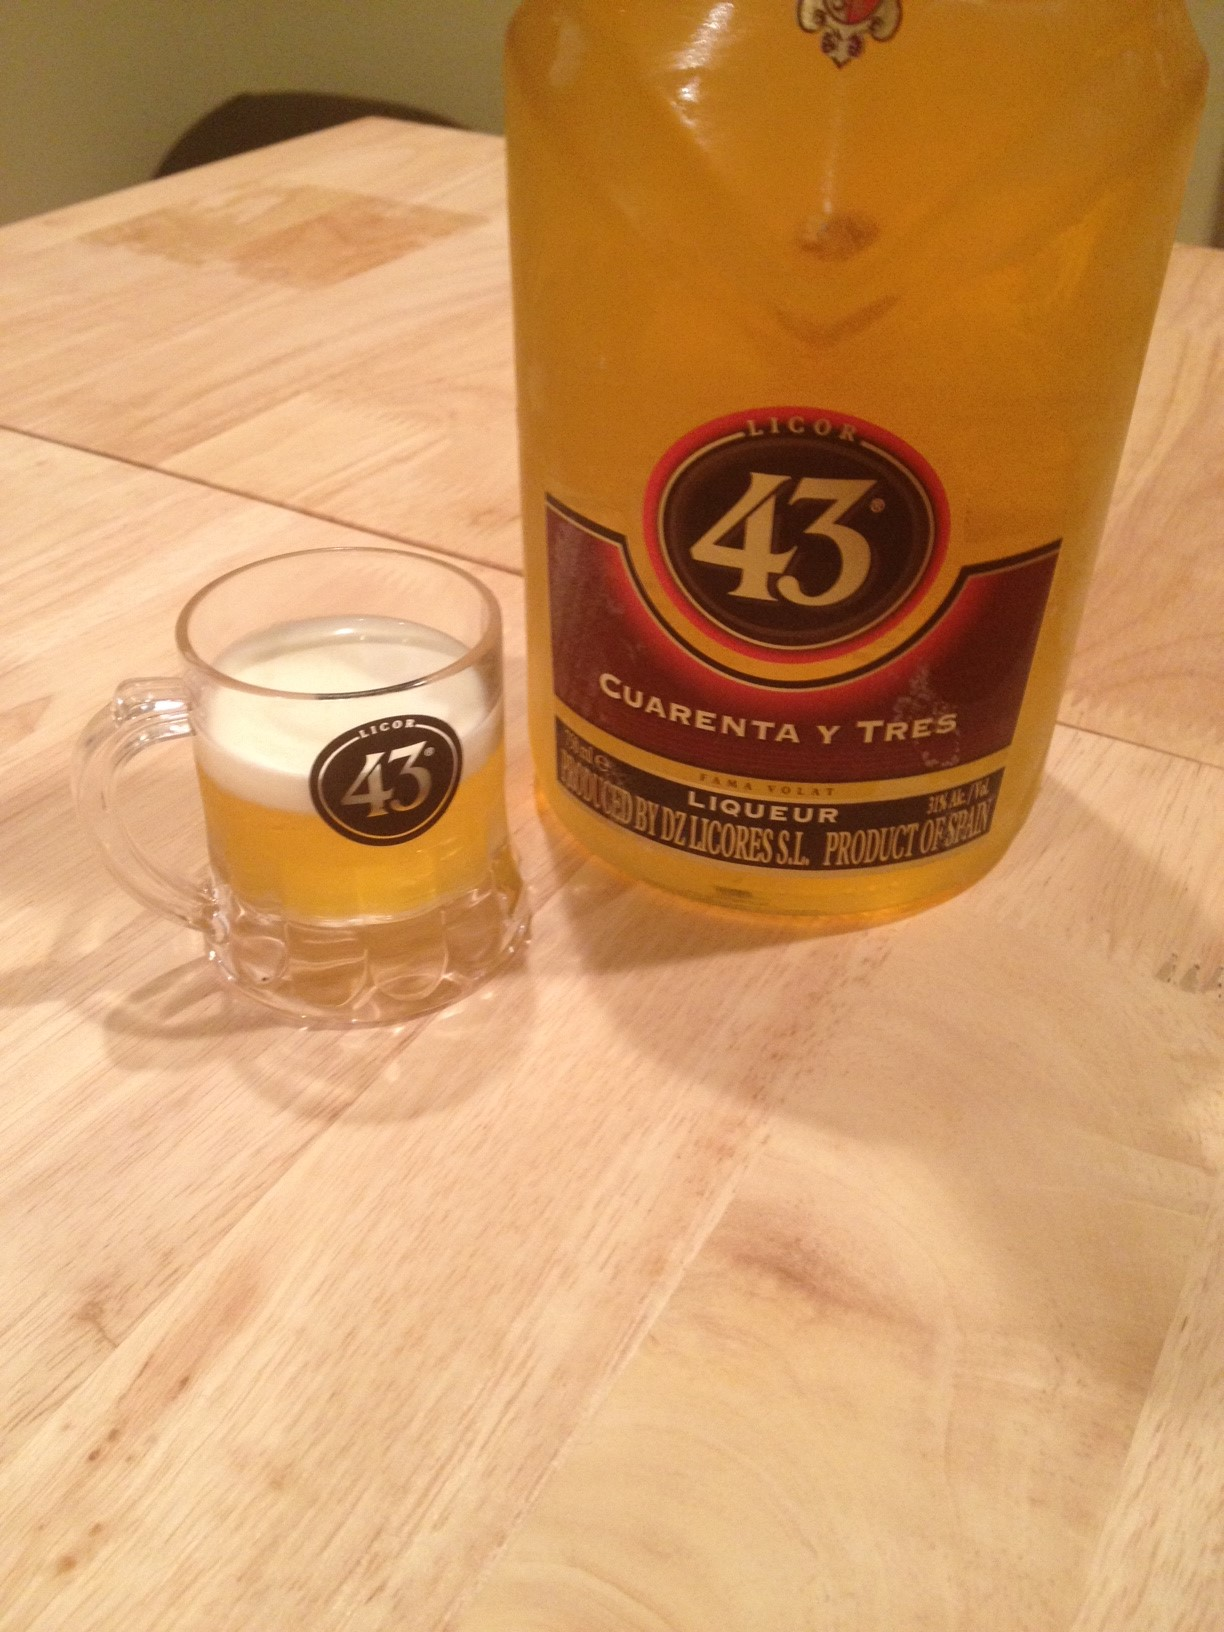 photo 1 Review: Licor 43 Cuarenta Y Tres